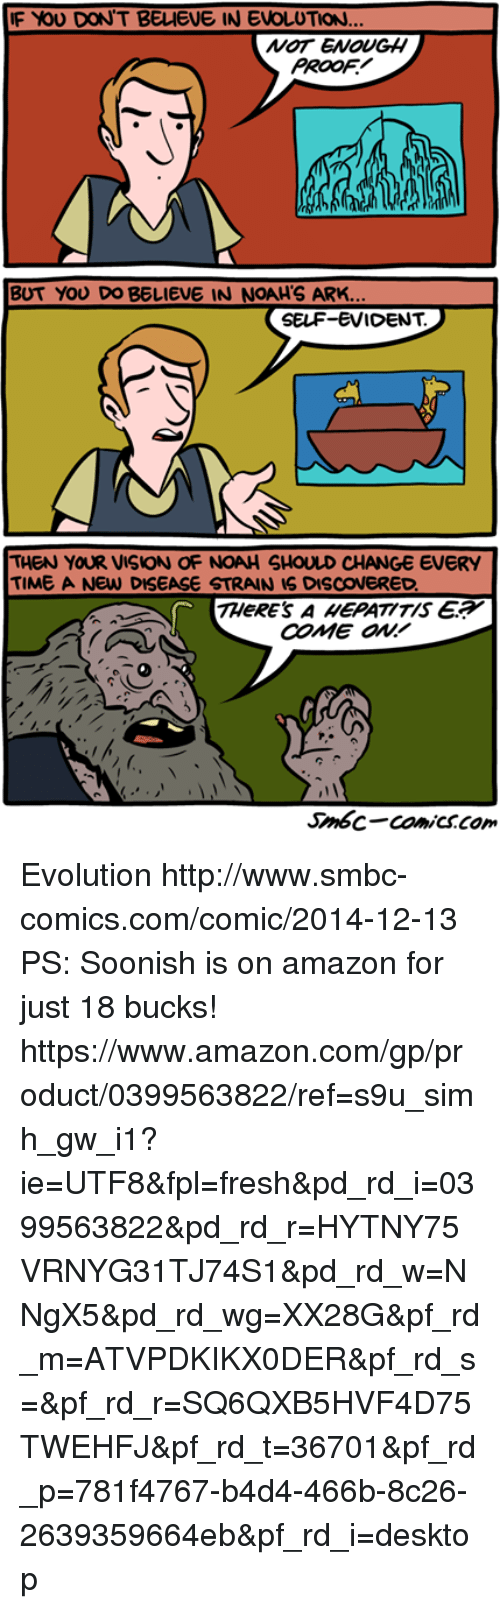 evident: F YOU DON'T BELIEVE IN EVOLUTION  NOT ENOUGH  PROOF  BUT YOU DO BELIEVE IN NOAH'S ARK.  SELF-EVIDENT.  THEN YOUR VISION OF NOAH SHOULD CHANGE EVERY  TIME A NEW DISEASE STRAIN IS DISCOVERED  THeRE'S A EPATITIS E  COME ON!  Smbc-comiCSCom Evolution http://www.smbc-comics.com/comic/2014-12-13  PS: Soonish is on amazon for just 18 bucks! https://www.amazon.com/gp/product/0399563822/ref=s9u_simh_gw_i1?ie=UTF8&fpl=fresh&pd_rd_i=0399563822&pd_rd_r=HYTNY75VRNYG31TJ74S1&pd_rd_w=NNgX5&pd_rd_wg=XX28G&pf_rd_m=ATVPDKIKX0DER&pf_rd_s=&pf_rd_r=SQ6QXB5HVF4D75TWEHFJ&pf_rd_t=36701&pf_rd_p=781f4767-b4d4-466b-8c26-2639359664eb&pf_rd_i=desktop